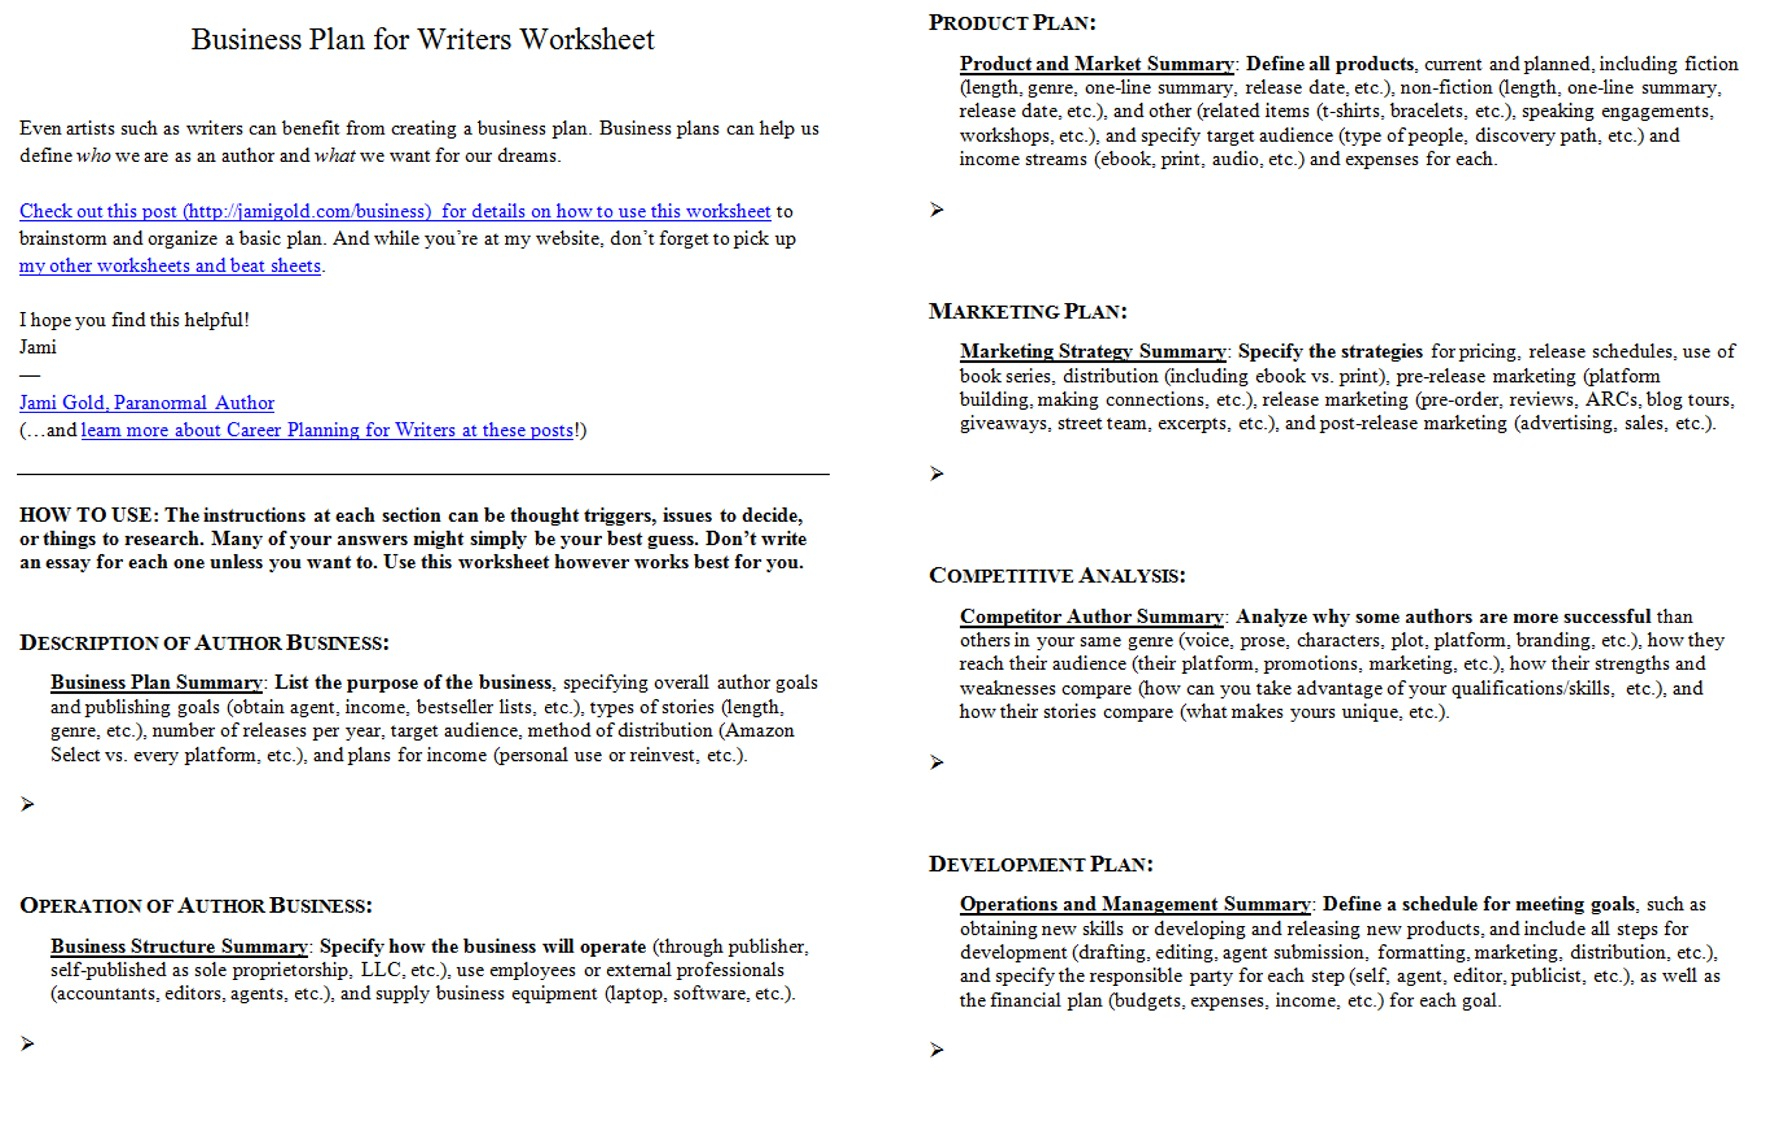 Weirdmailus  Gorgeous Worksheets For Writers  Jami Gold Paranormal Author With Handsome Screen Shot Of Both Pages Of The Business Plan For Writers Worksheet With Extraordinary Worksheets On Scientific Notation Also Partial Product Worksheets In Addition Create Addition Worksheets And Math  Worksheets As Well As Solar System Worksheets For Kids Additionally Math Worksheet Printables From Jamigoldcom With Weirdmailus  Handsome Worksheets For Writers  Jami Gold Paranormal Author With Extraordinary Screen Shot Of Both Pages Of The Business Plan For Writers Worksheet And Gorgeous Worksheets On Scientific Notation Also Partial Product Worksheets In Addition Create Addition Worksheets From Jamigoldcom